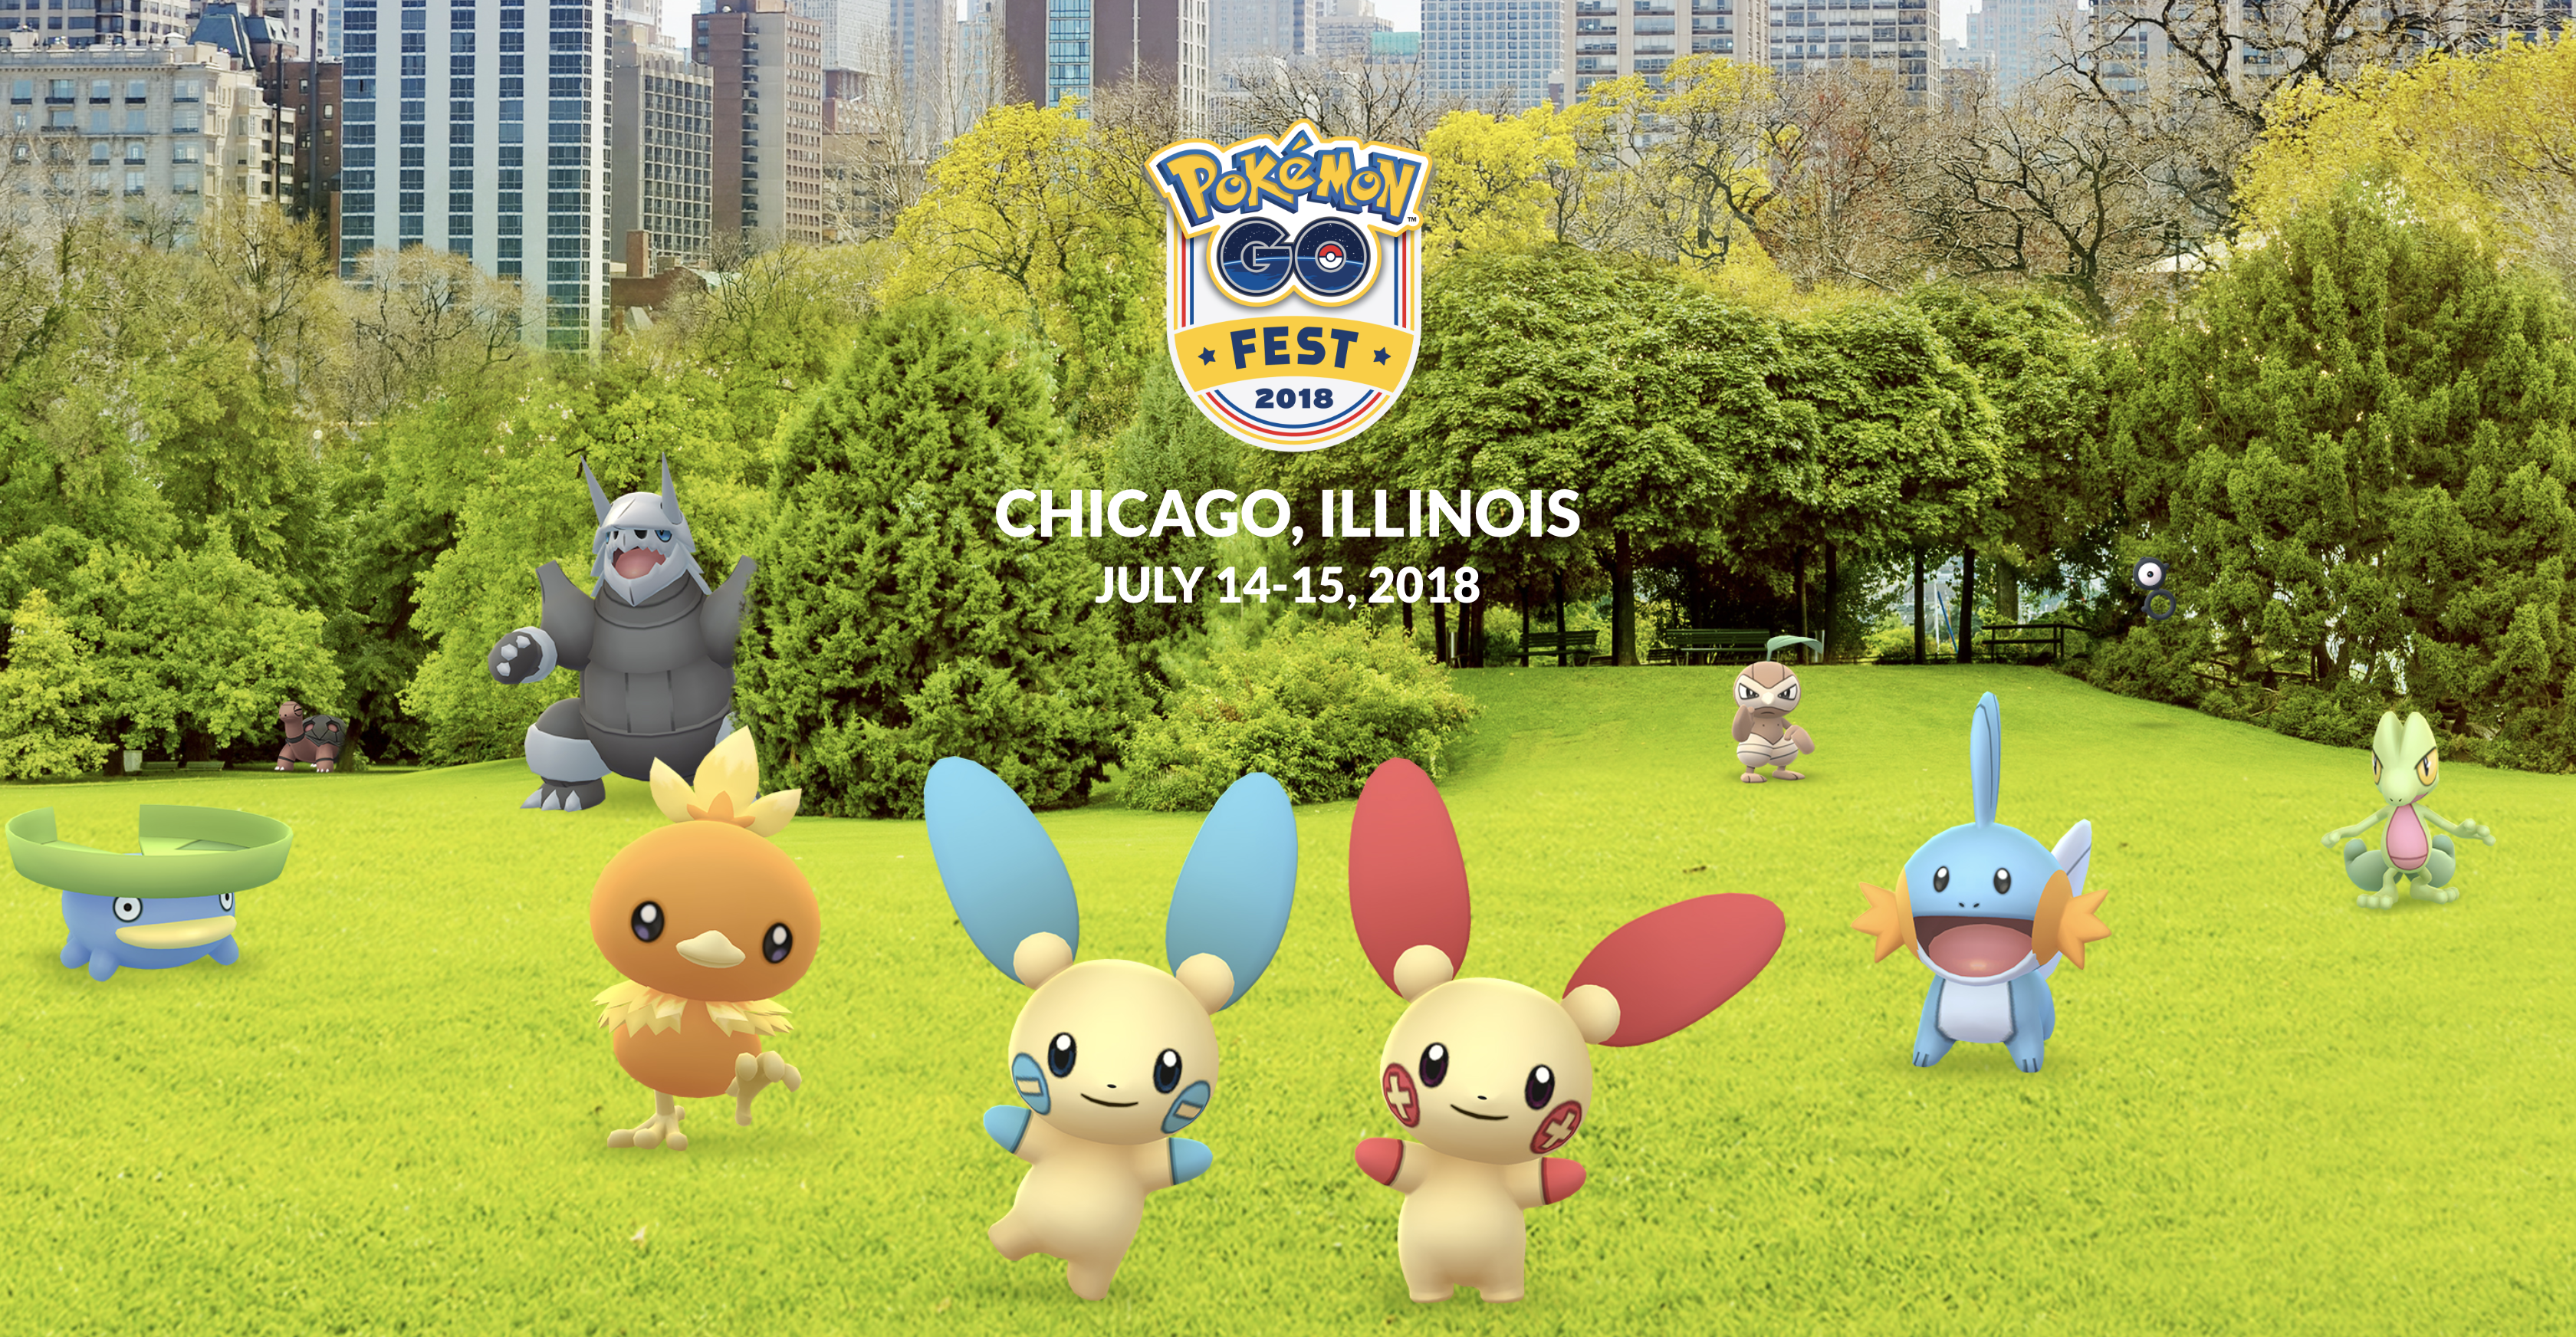 Pokémon GO' Fest Reveals Last-Minute Tips for Contests and